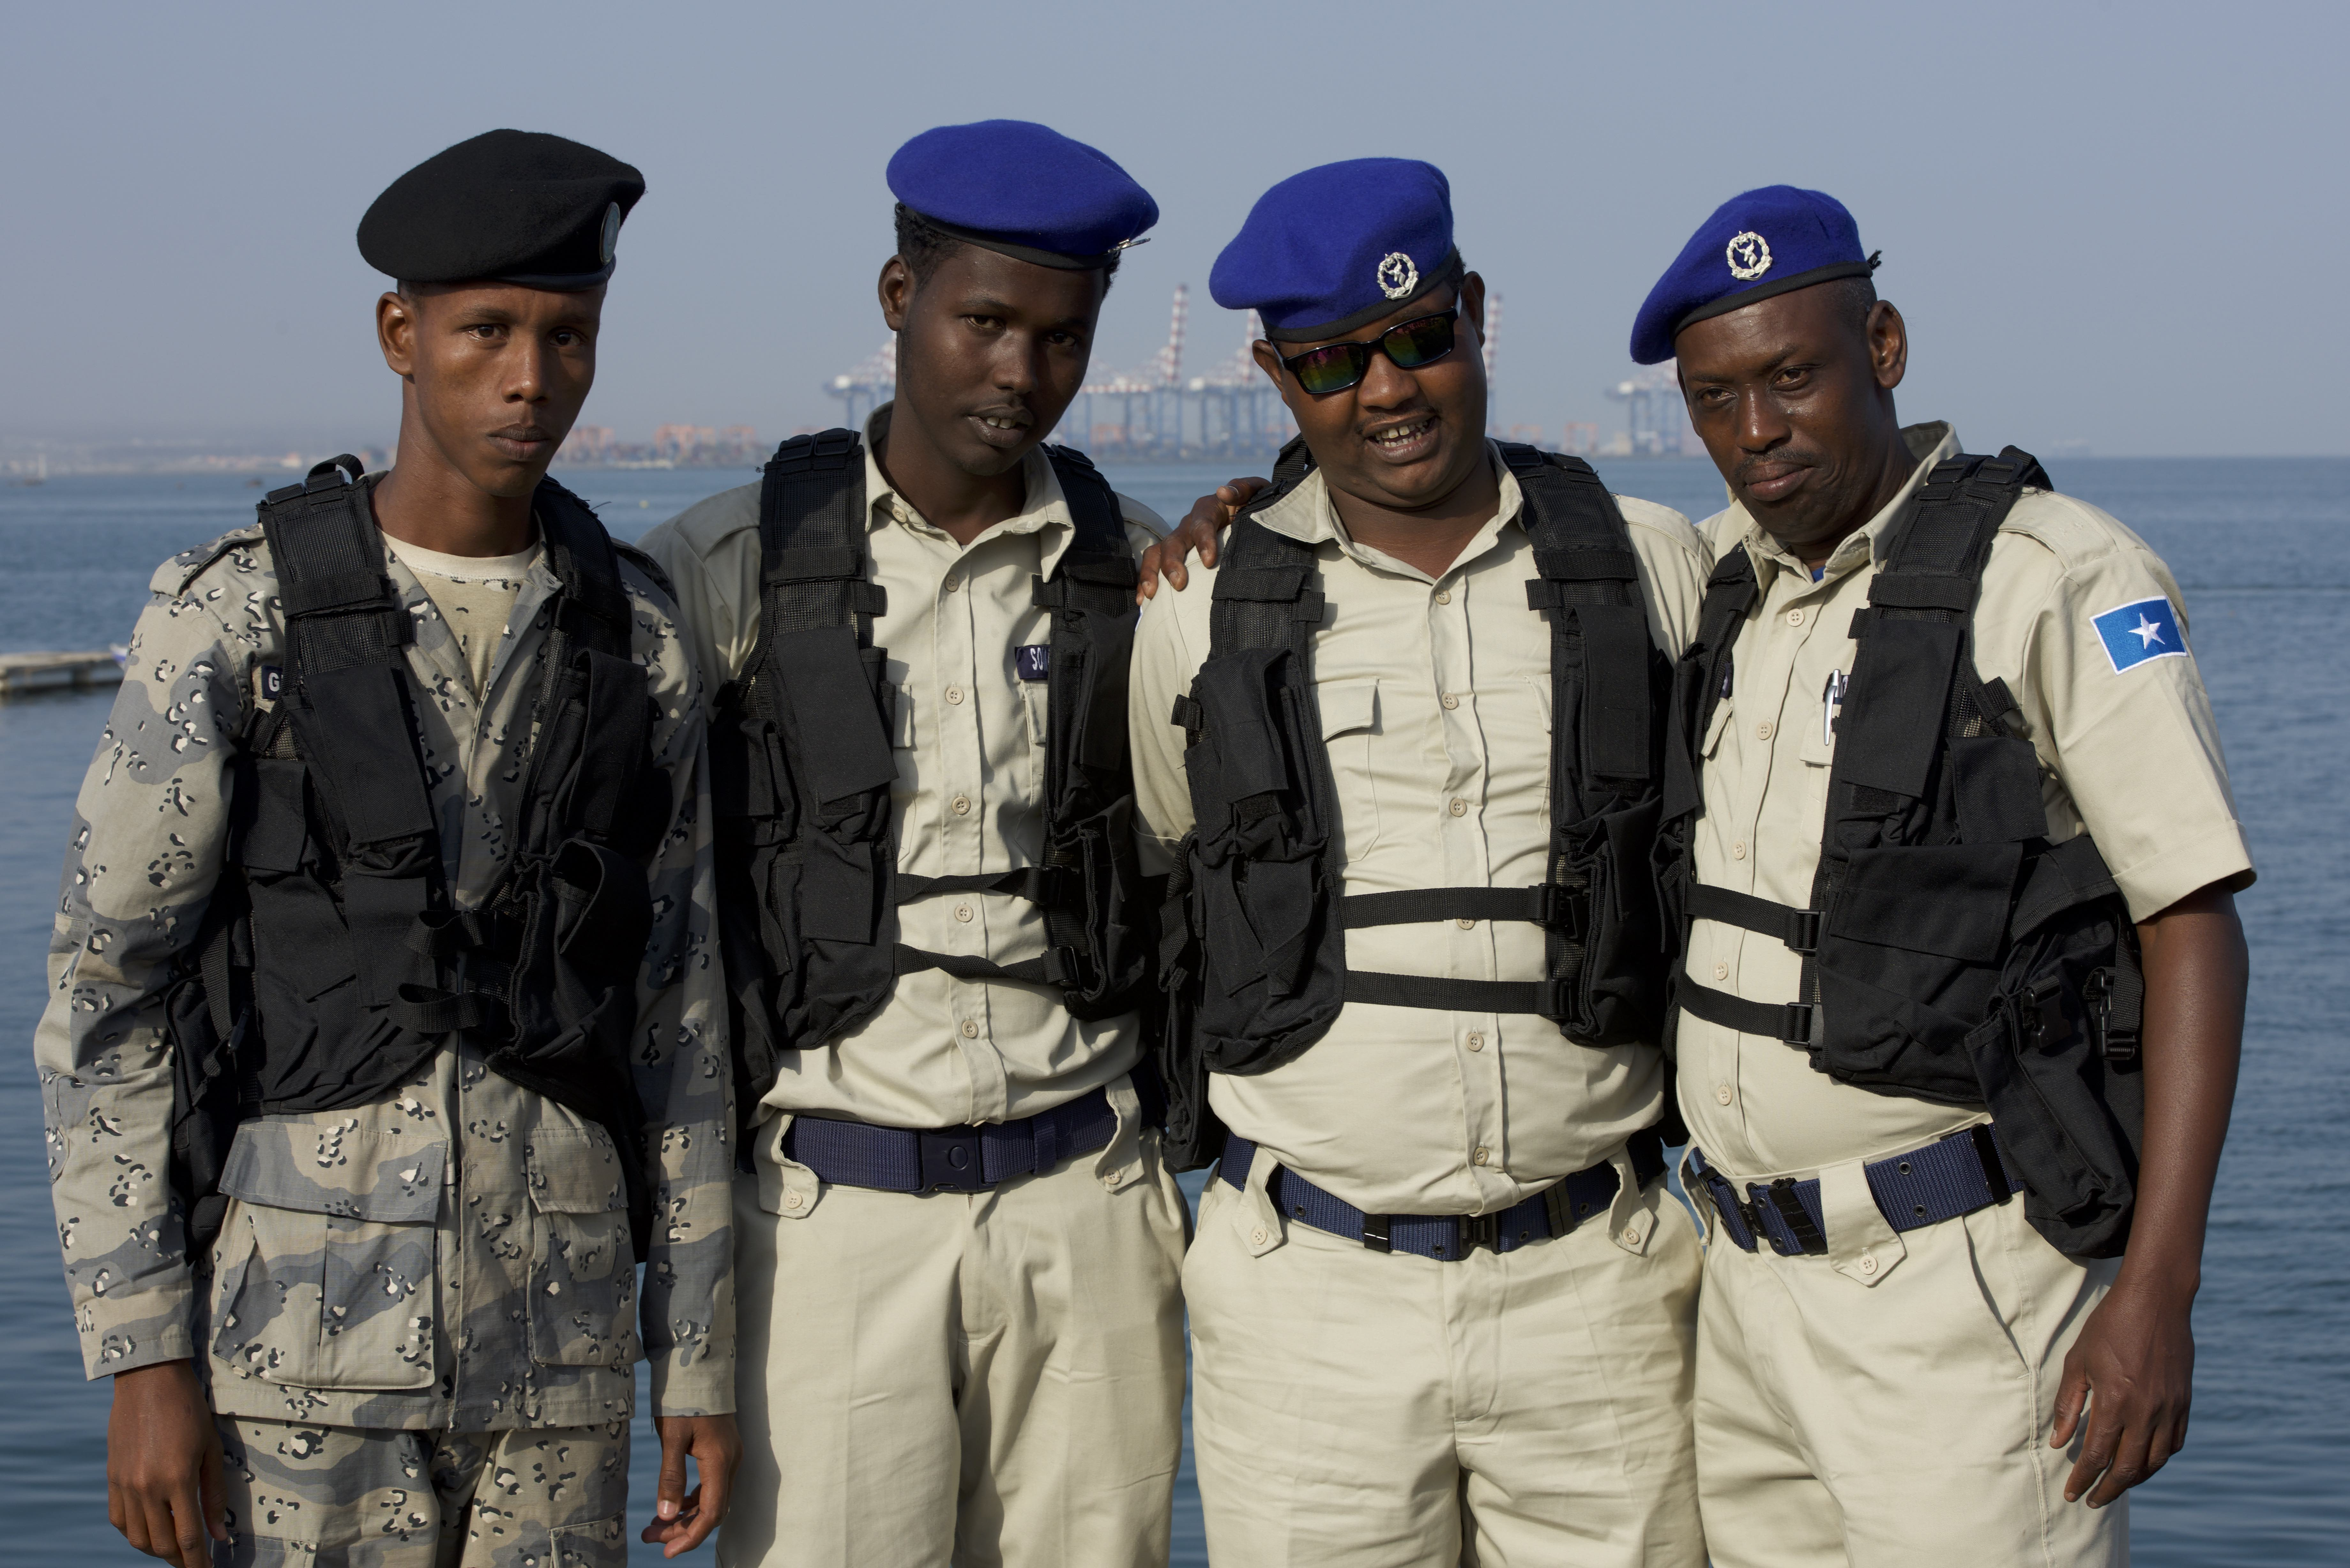 Participants from the Djibouti coast guard and Somali maritime police pose for a photo together during exercise Cutlass Express 2018 in the Port of Djibouti Feb. 5, 2018. Cutlass Express is designed to improve cooperation, maritime domain awareness and information sharing practices to increase capabilities between the U.S., East African and Western Indian Ocean nations. (U.S. Air National Guard photo by Staff Sgt. Allyson Manners)